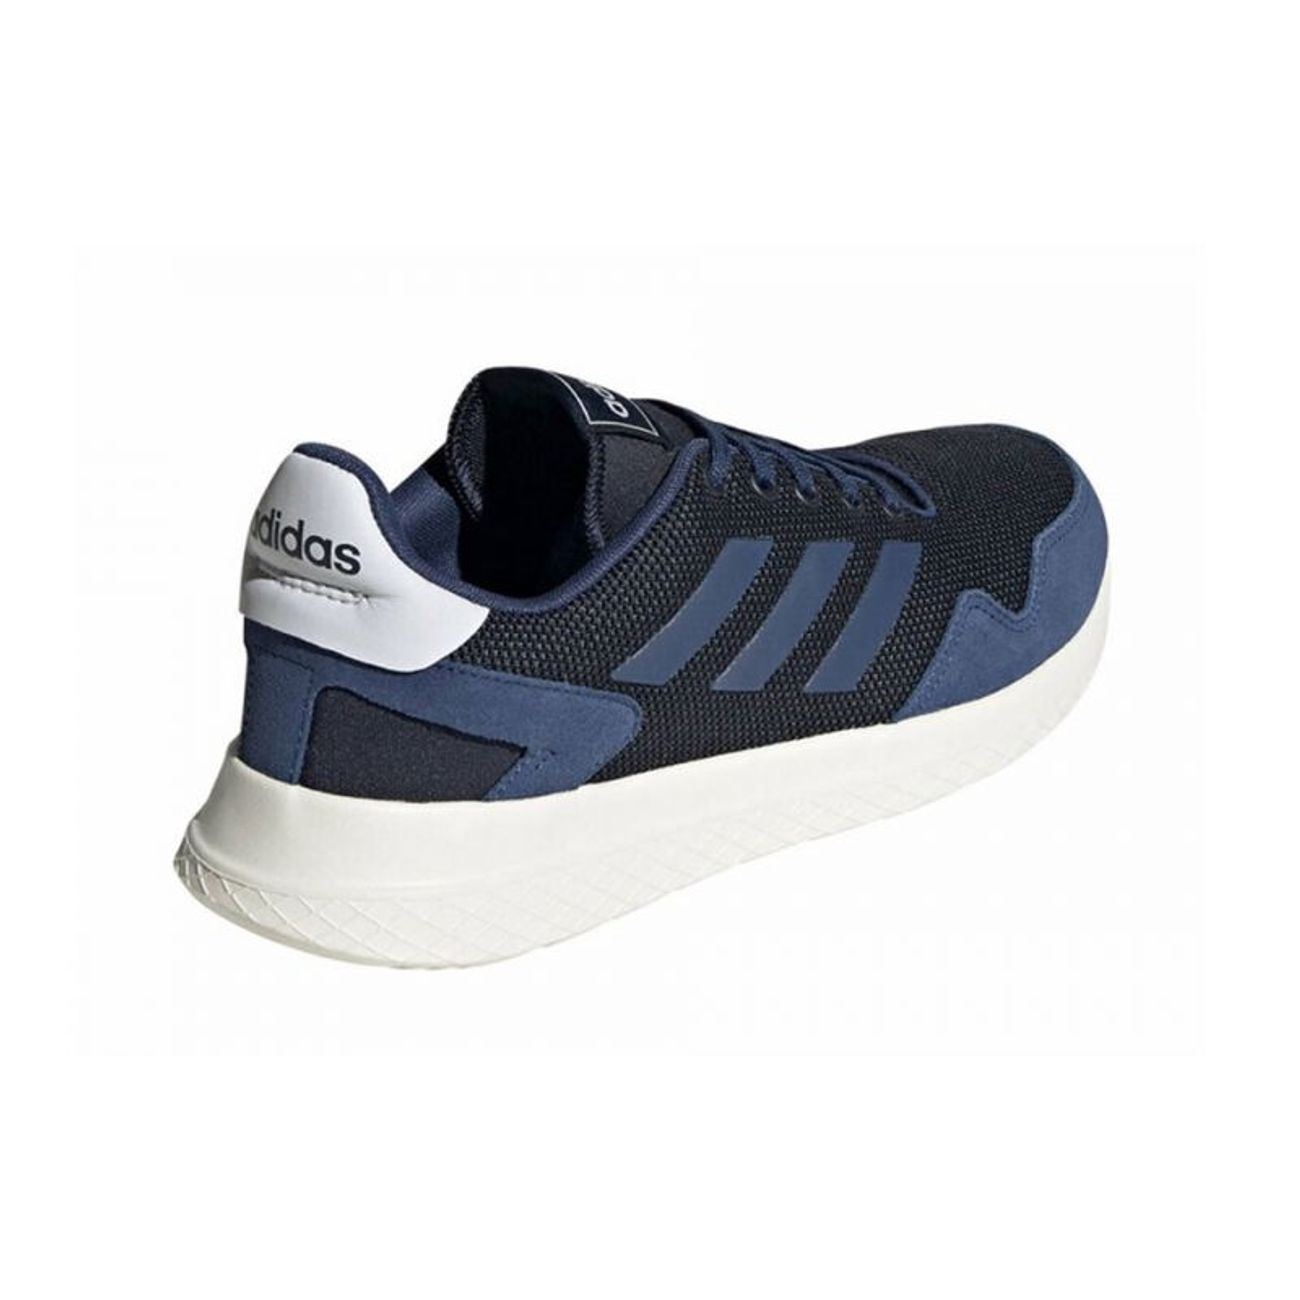 Mode- Lifestyle homme ADIDAS ADIDAS Archivo Chaussure Homme